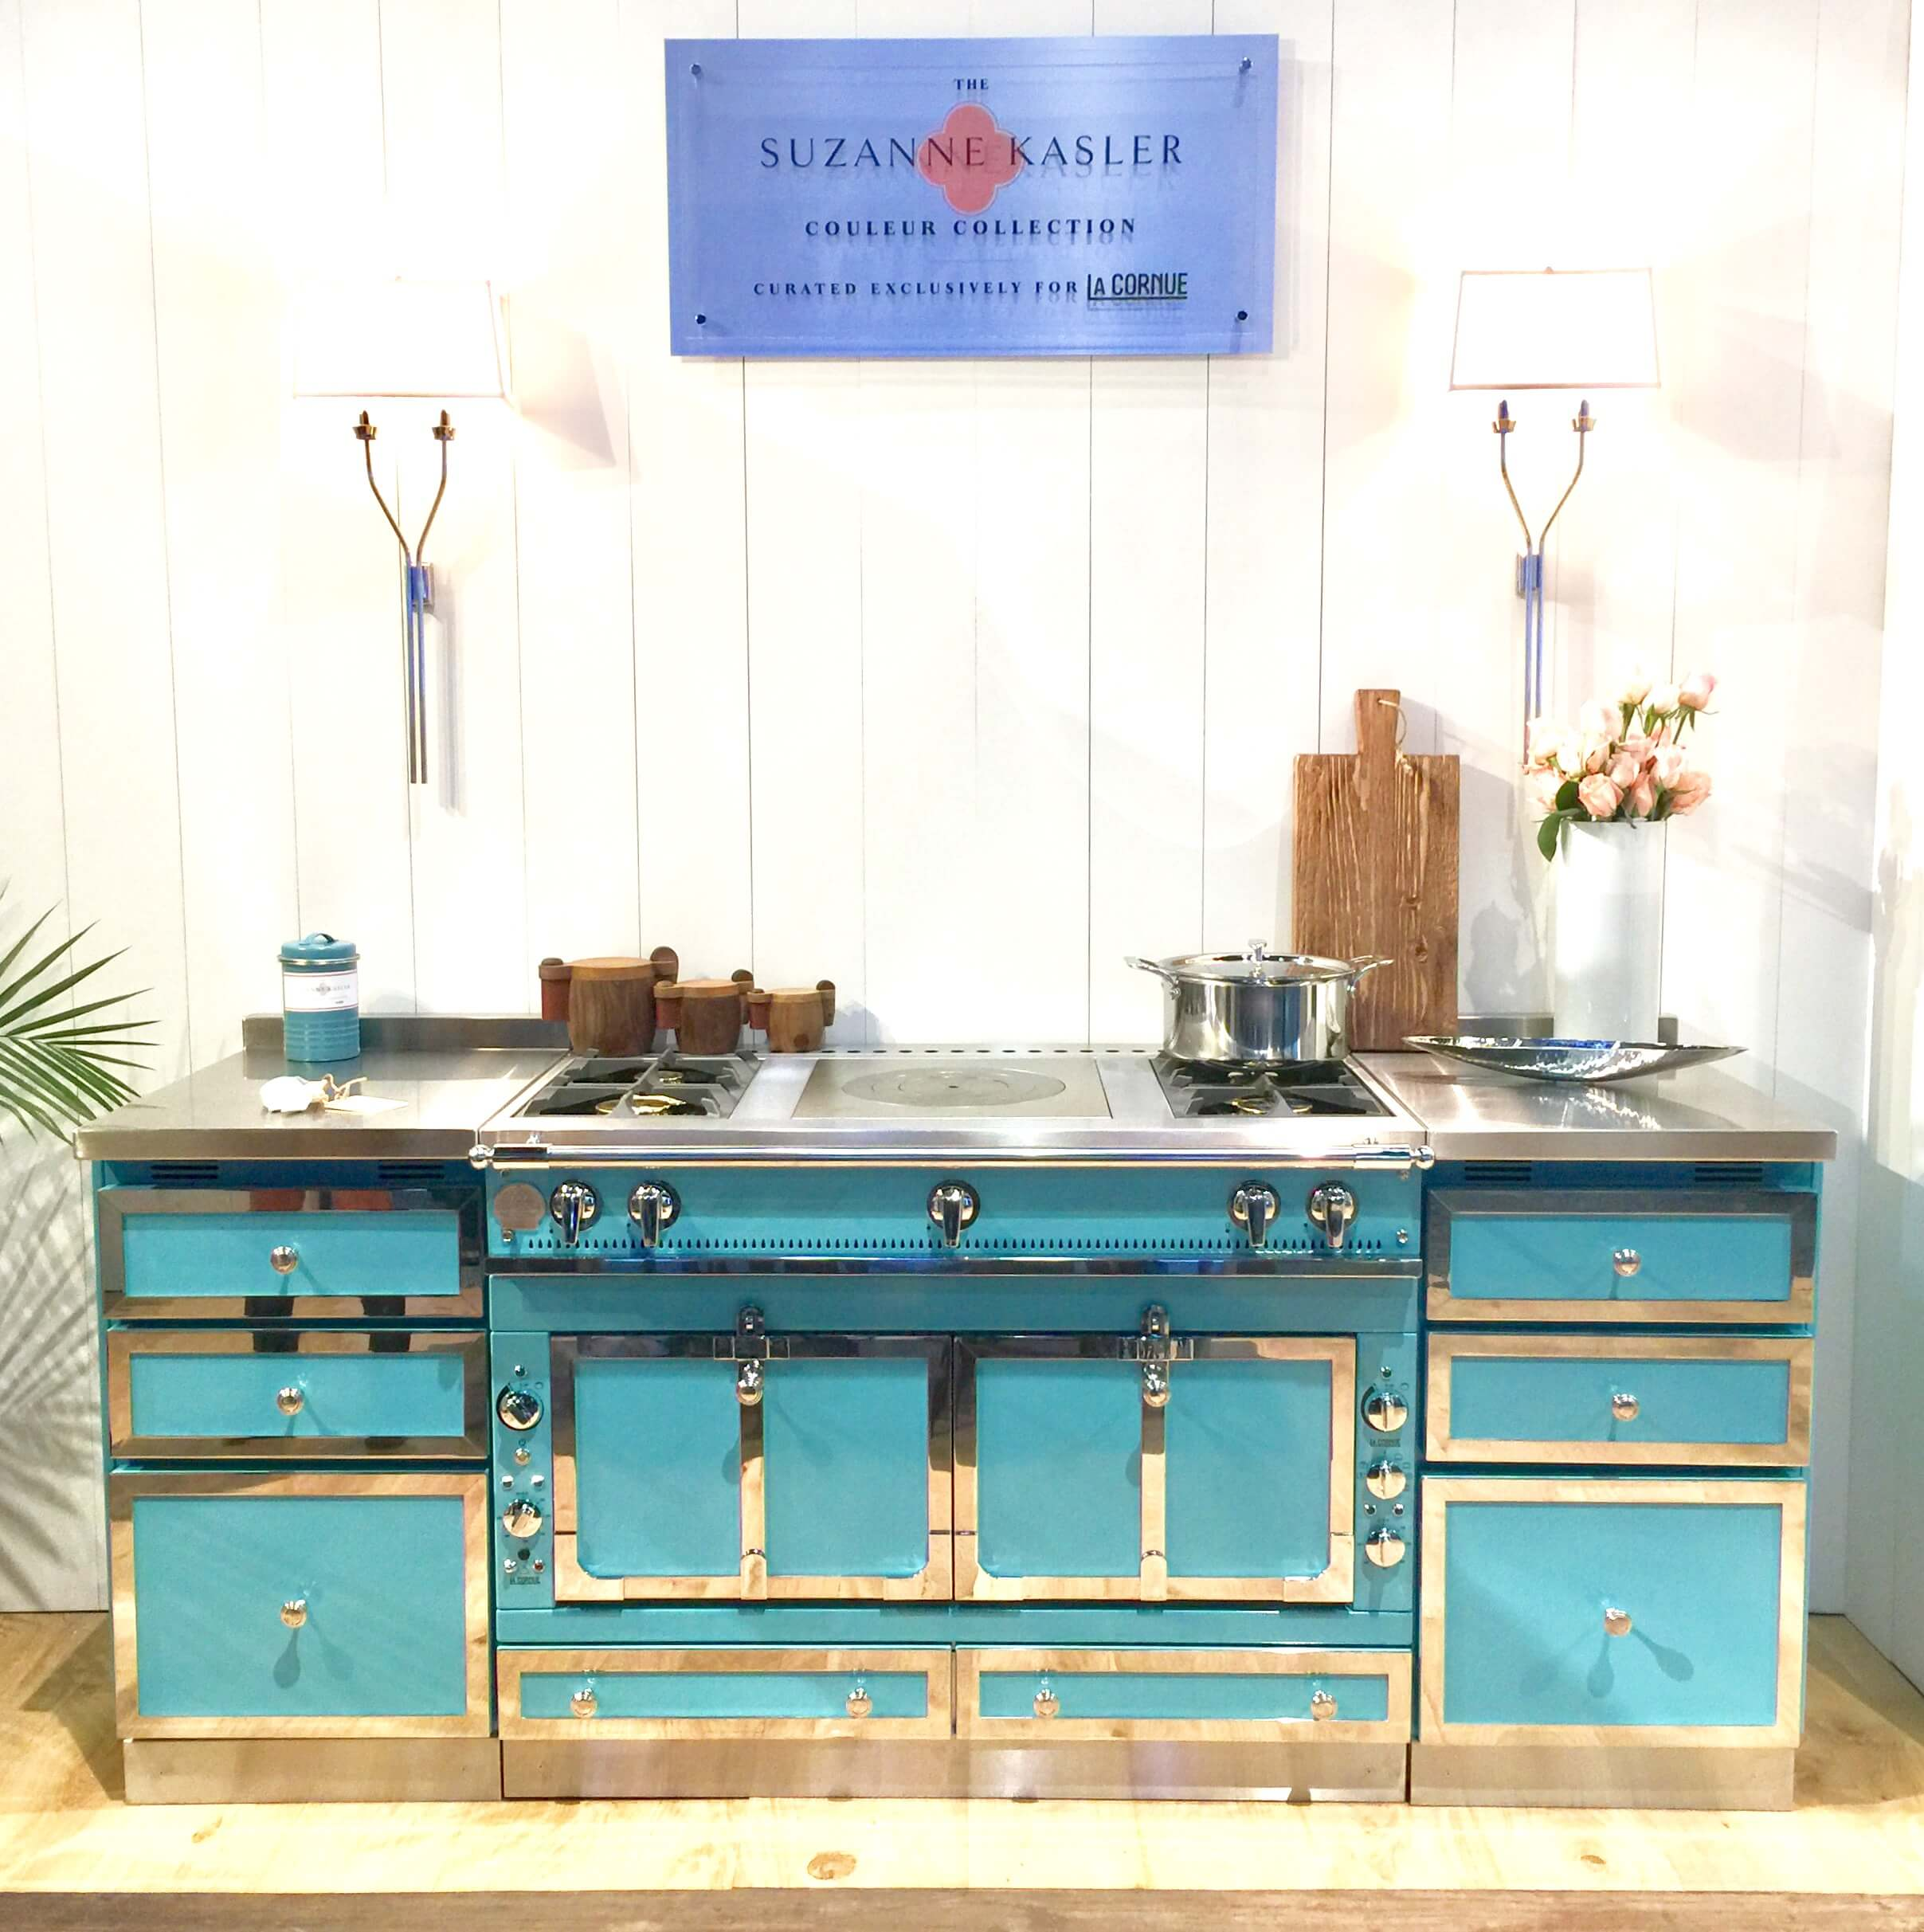 Oh yes, she's a pretty thing. Love the turquoise on this La Cornue range. This adds tons of personality to a kitchen.